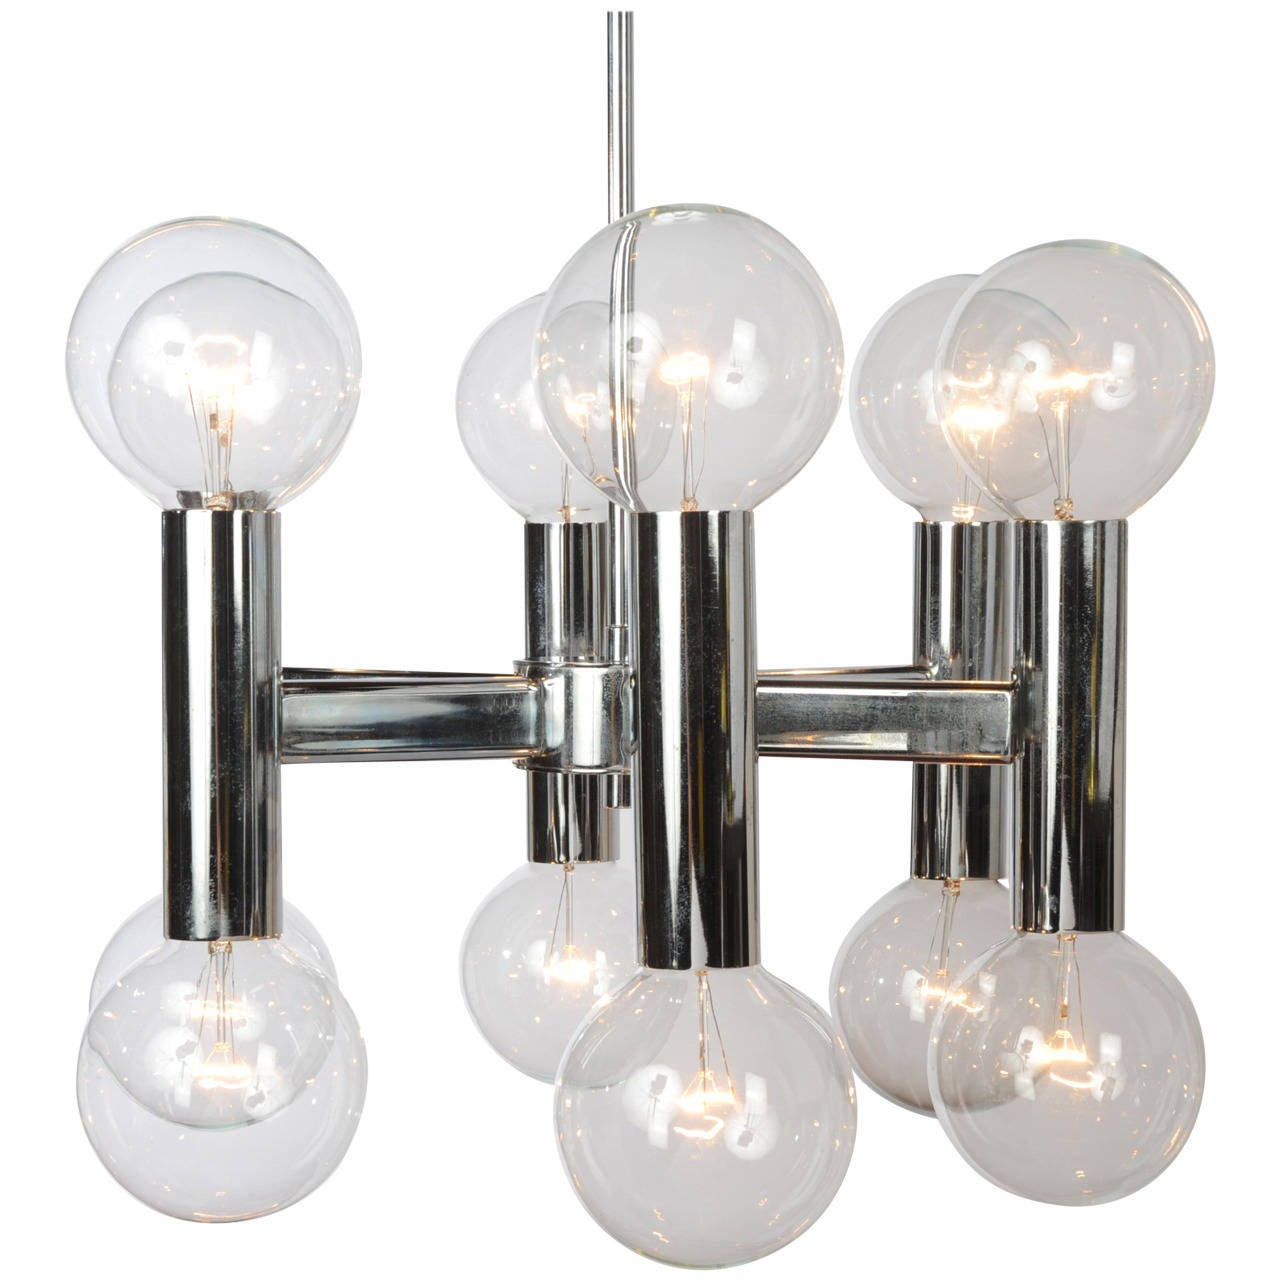 chrome and glass mid century modern chandelier at 1stdibs. Black Bedroom Furniture Sets. Home Design Ideas